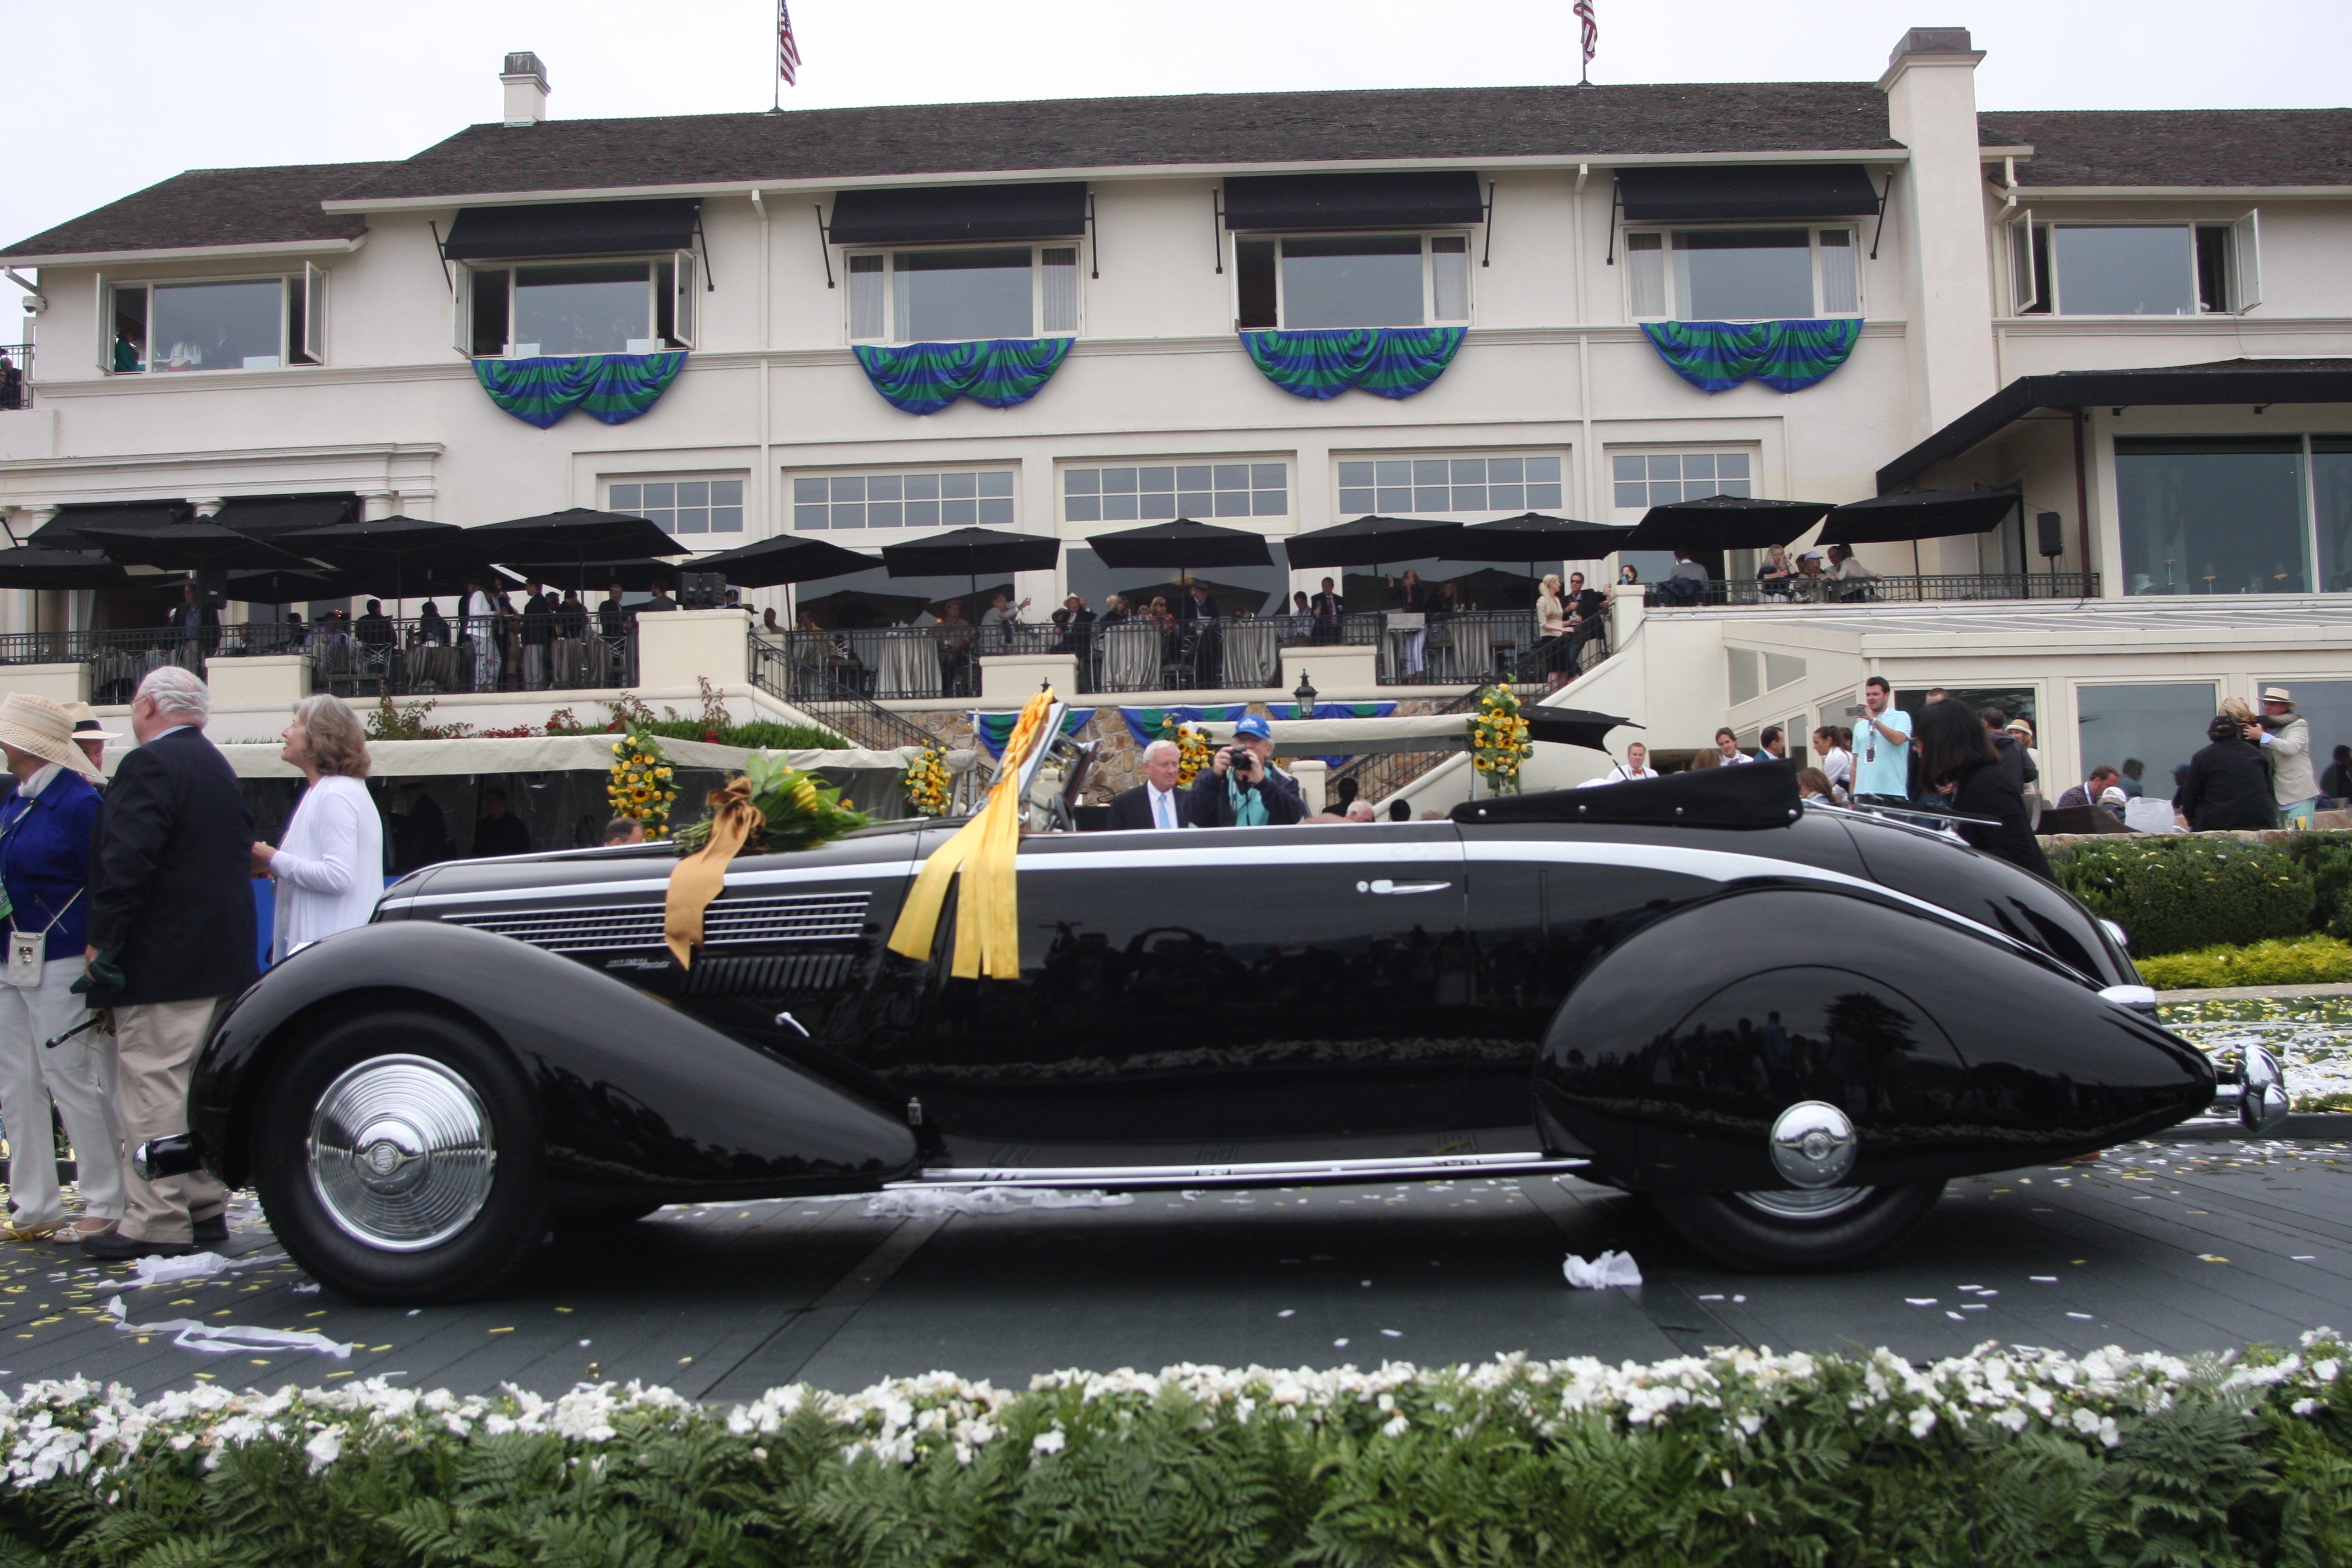 2020 Pebble Beach Best Of Show Pebble Beach Concours d'Elegance winning 1936 Lancia Astura sold